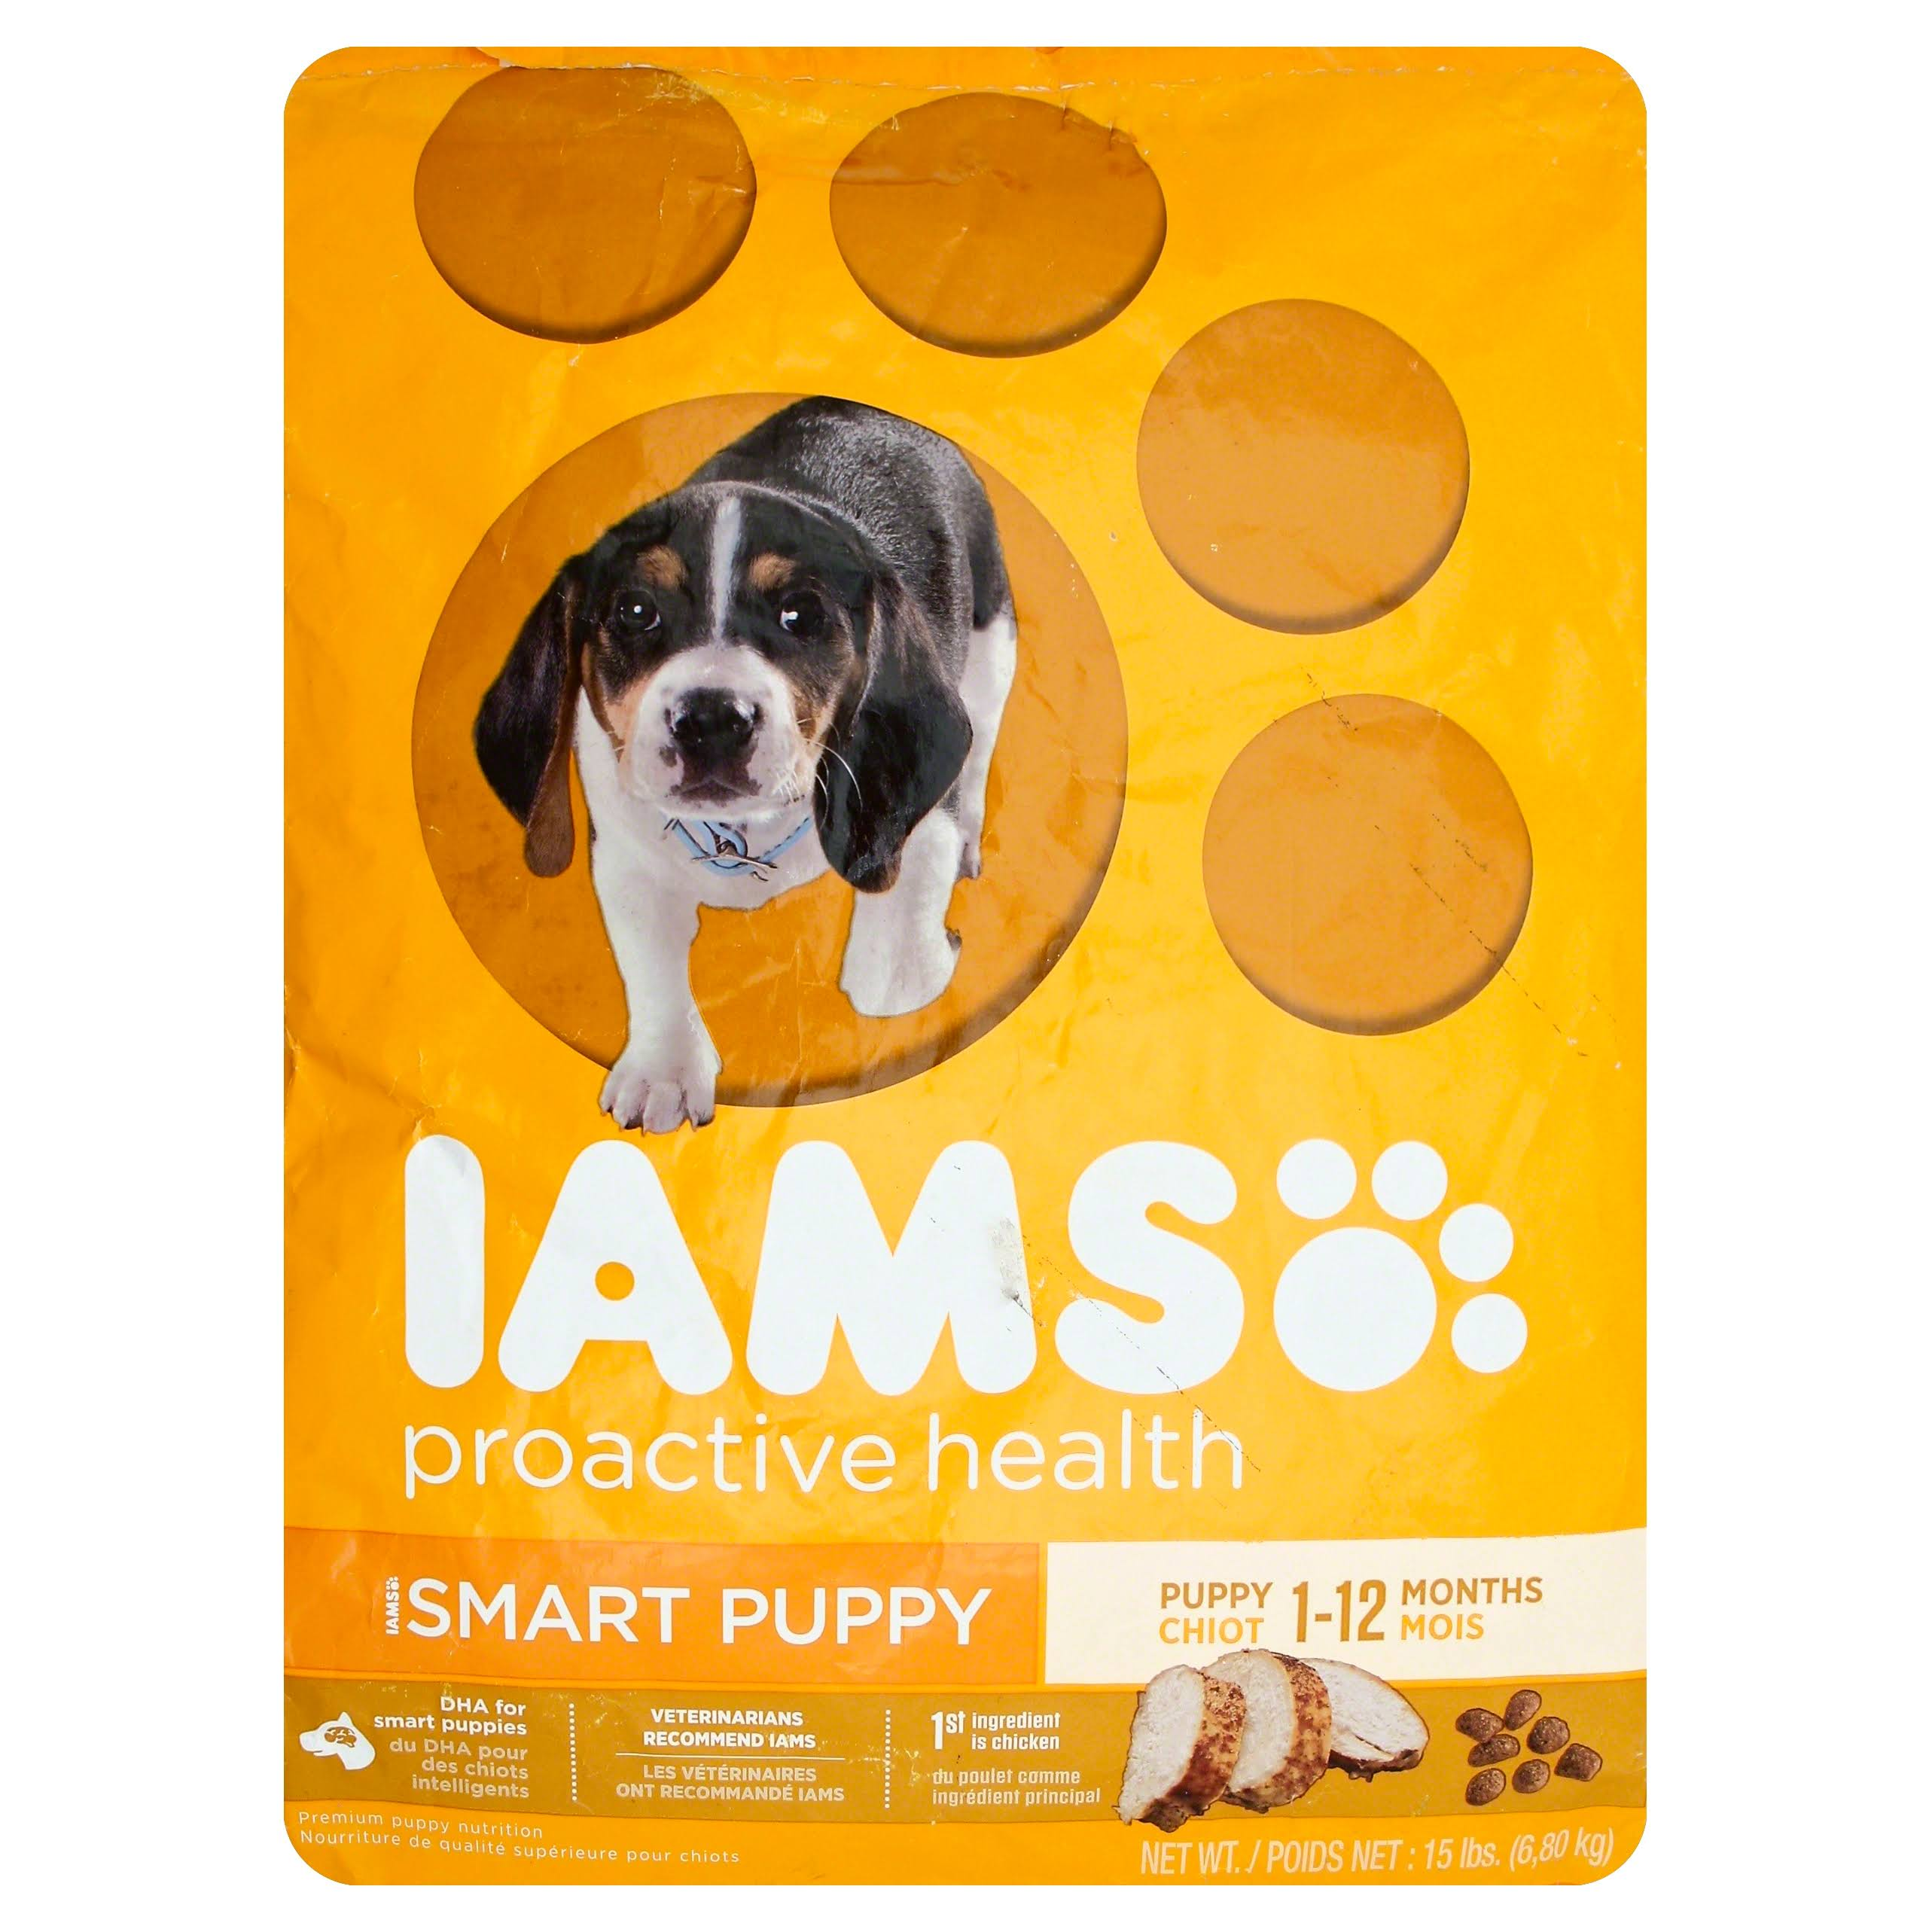 Iams Proactive Health Smart Puppy Premium Puppy Nutrition - 1-12 Months, 15lbs